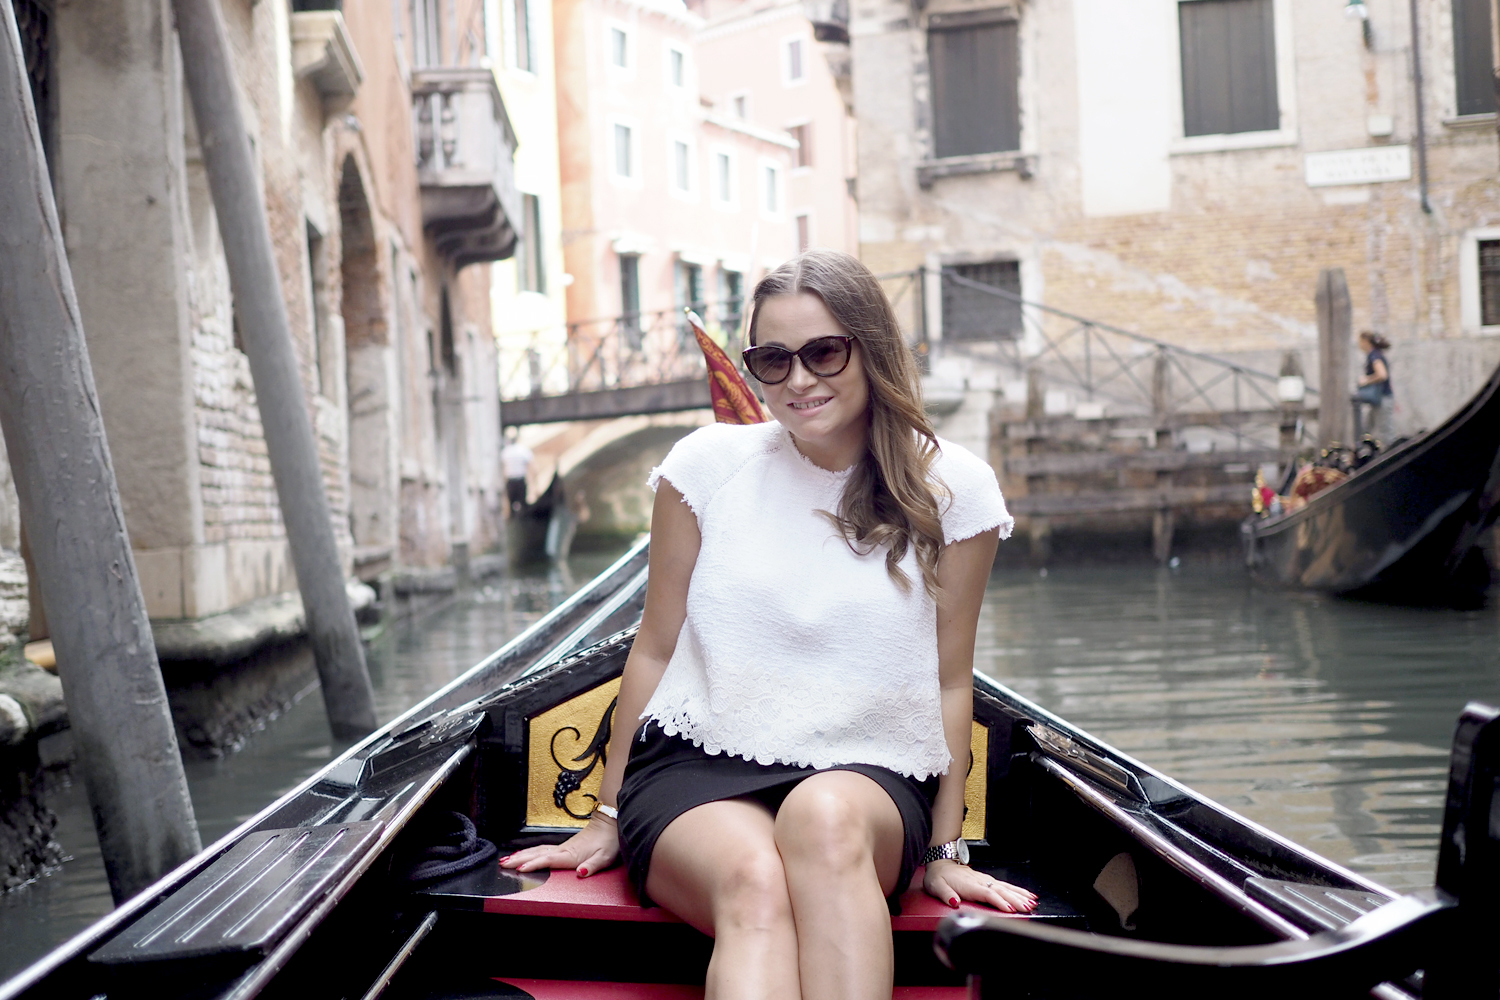 Char and the city - greetings from Venice, Italy - check out the travel pictures of a gondola ride on the blog: //www.idealista.fi/charandthecity/2016/09/09/buongiorno-venice